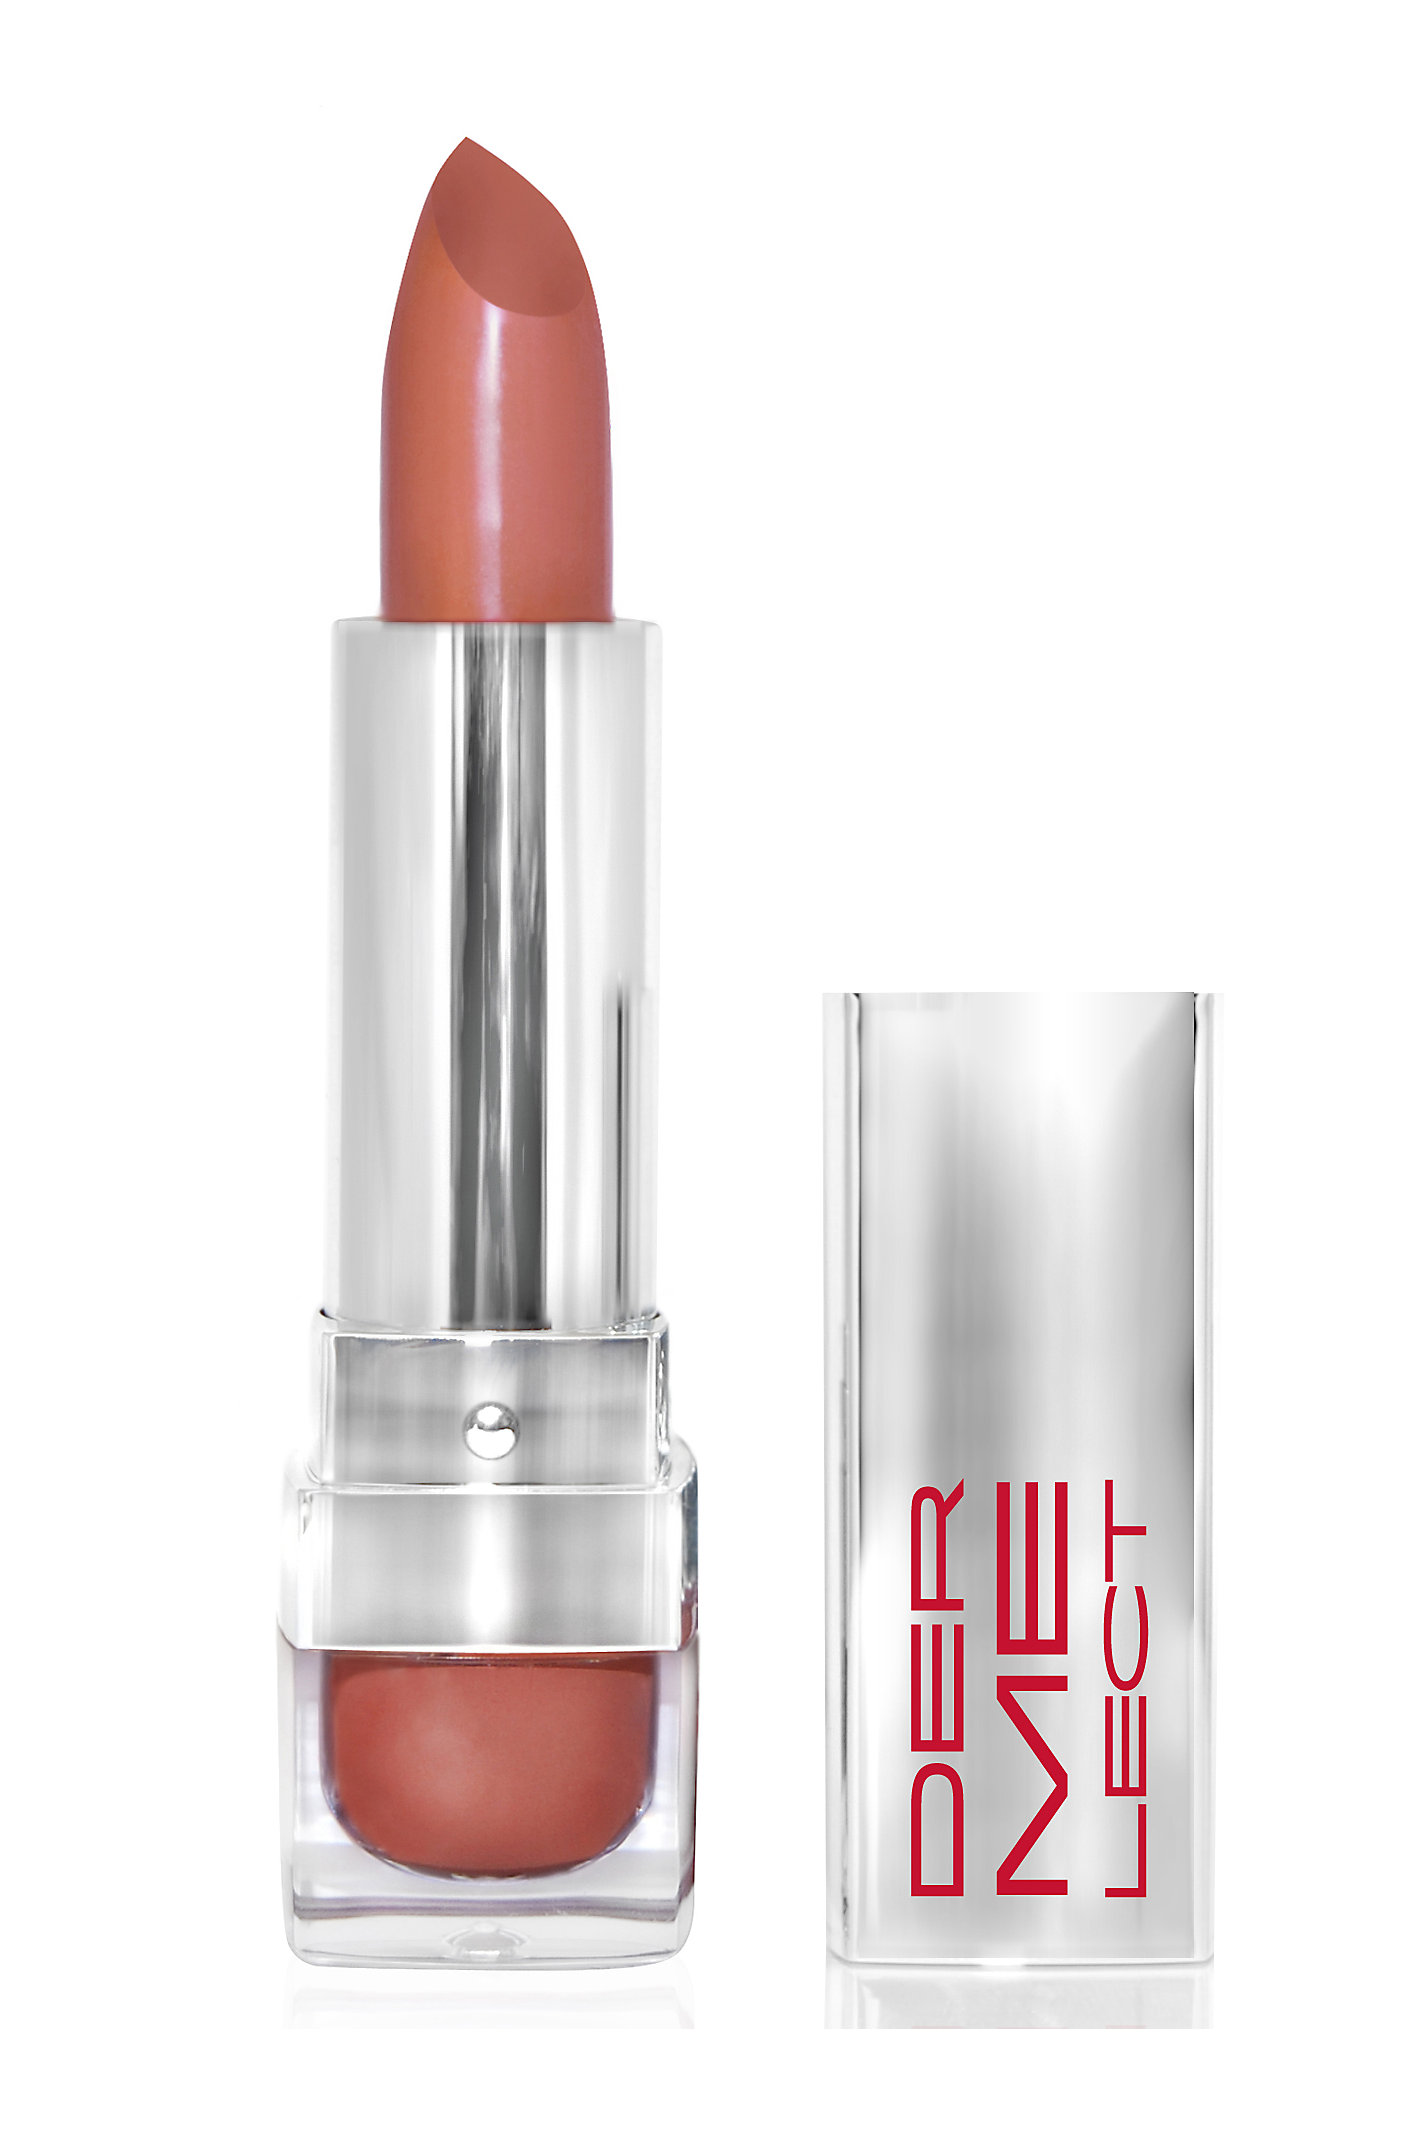 4-IN-1 SMOOTH LIP SOLUTION